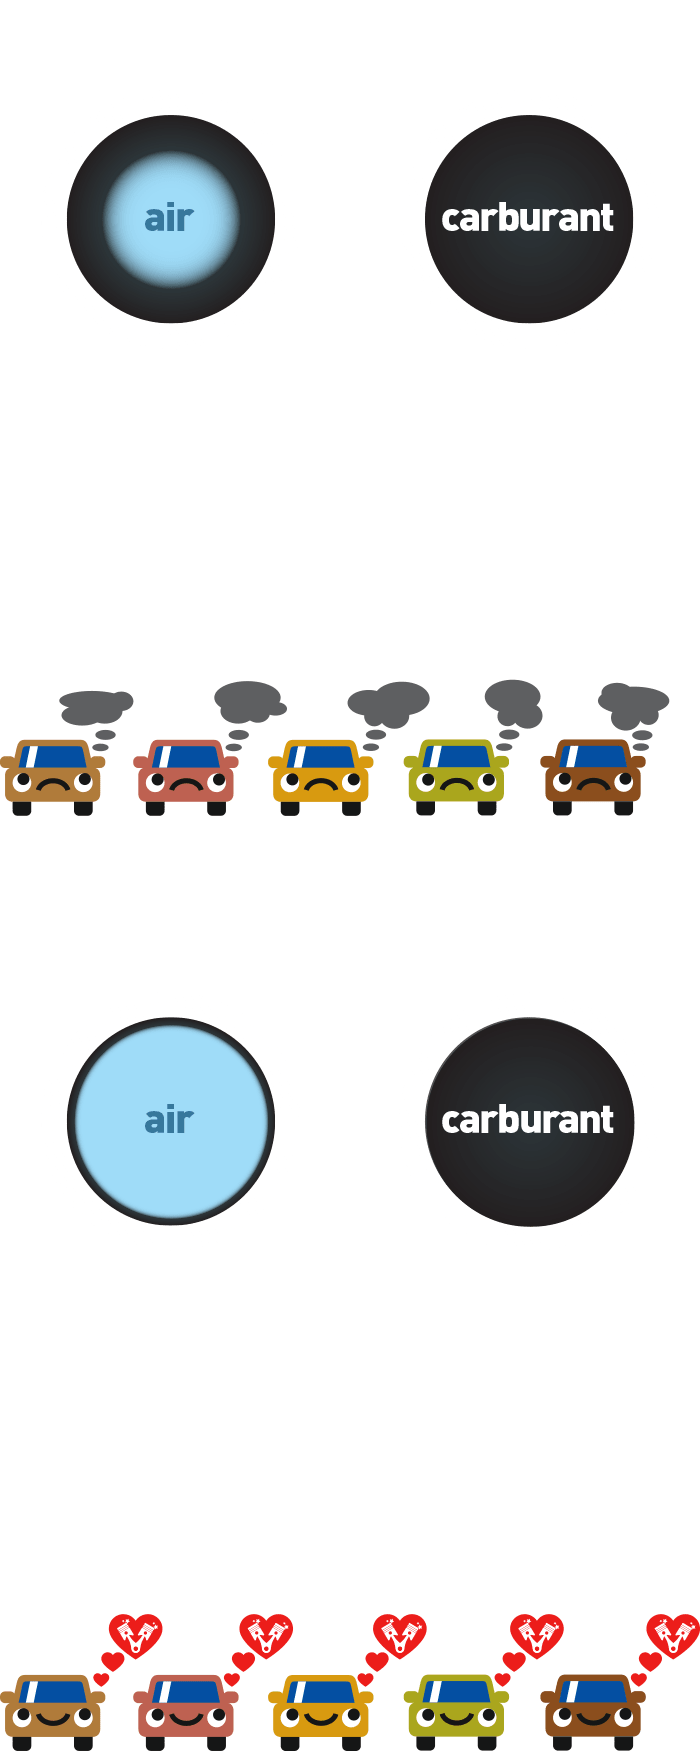 Carlove-OptimisationMoteur9-equilibre